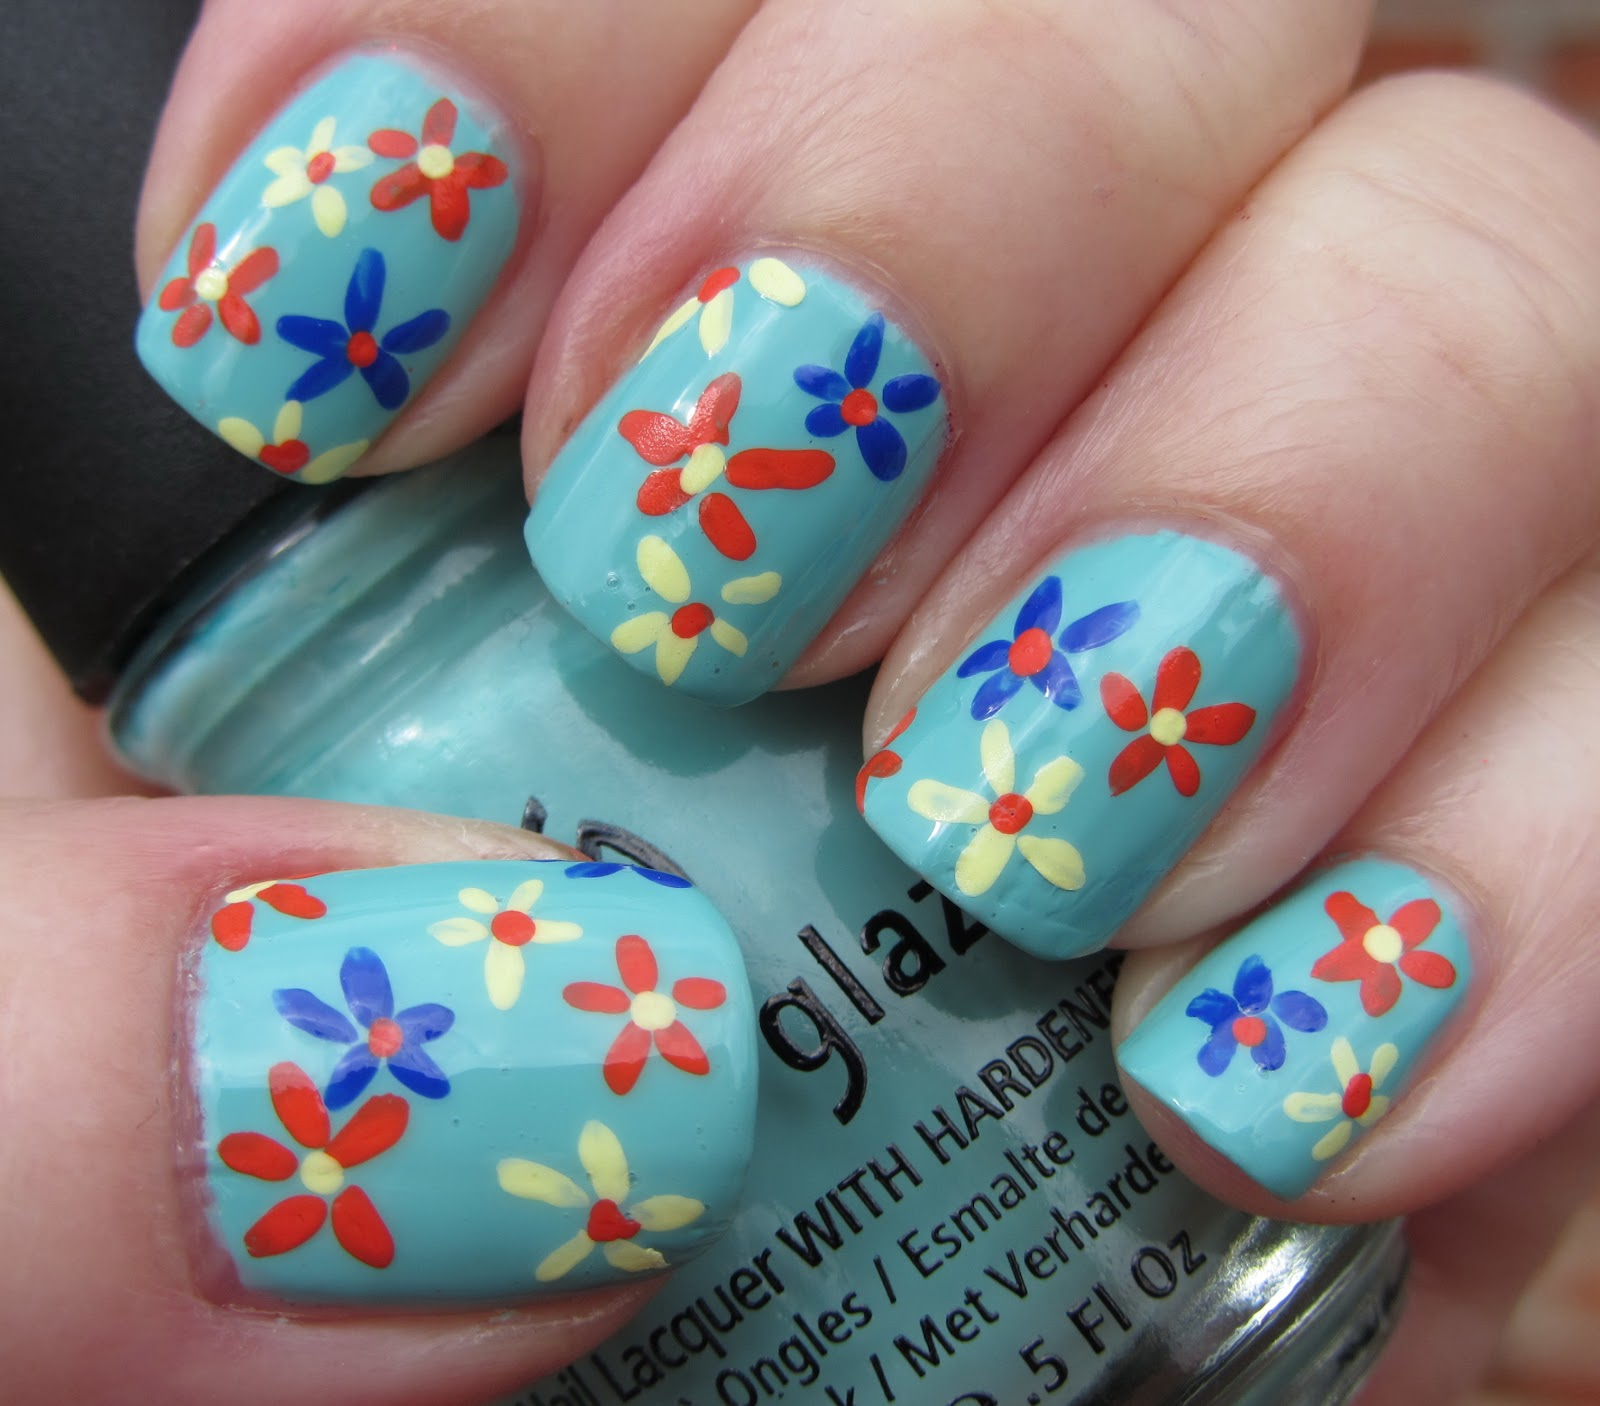 Flower Nails: Marias Nail Art And Polish Blog: Flowers For Audrey